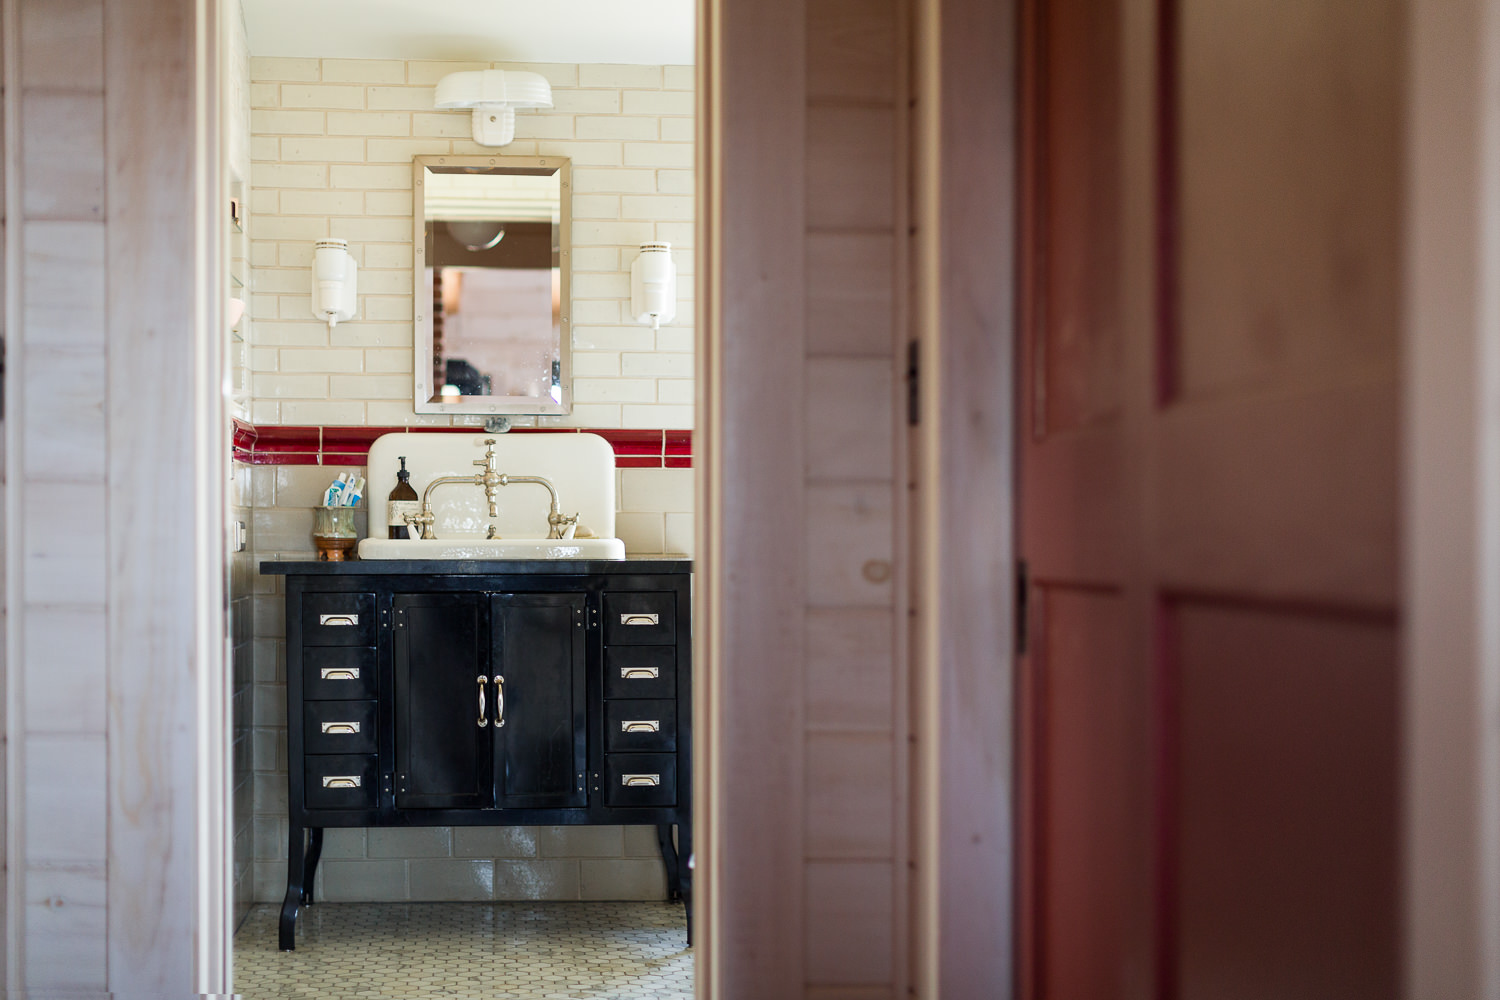 Interior architecture photo of bathroom in efficient farmhouse built by New Frameworks Natural Building in Middlesex Vermont